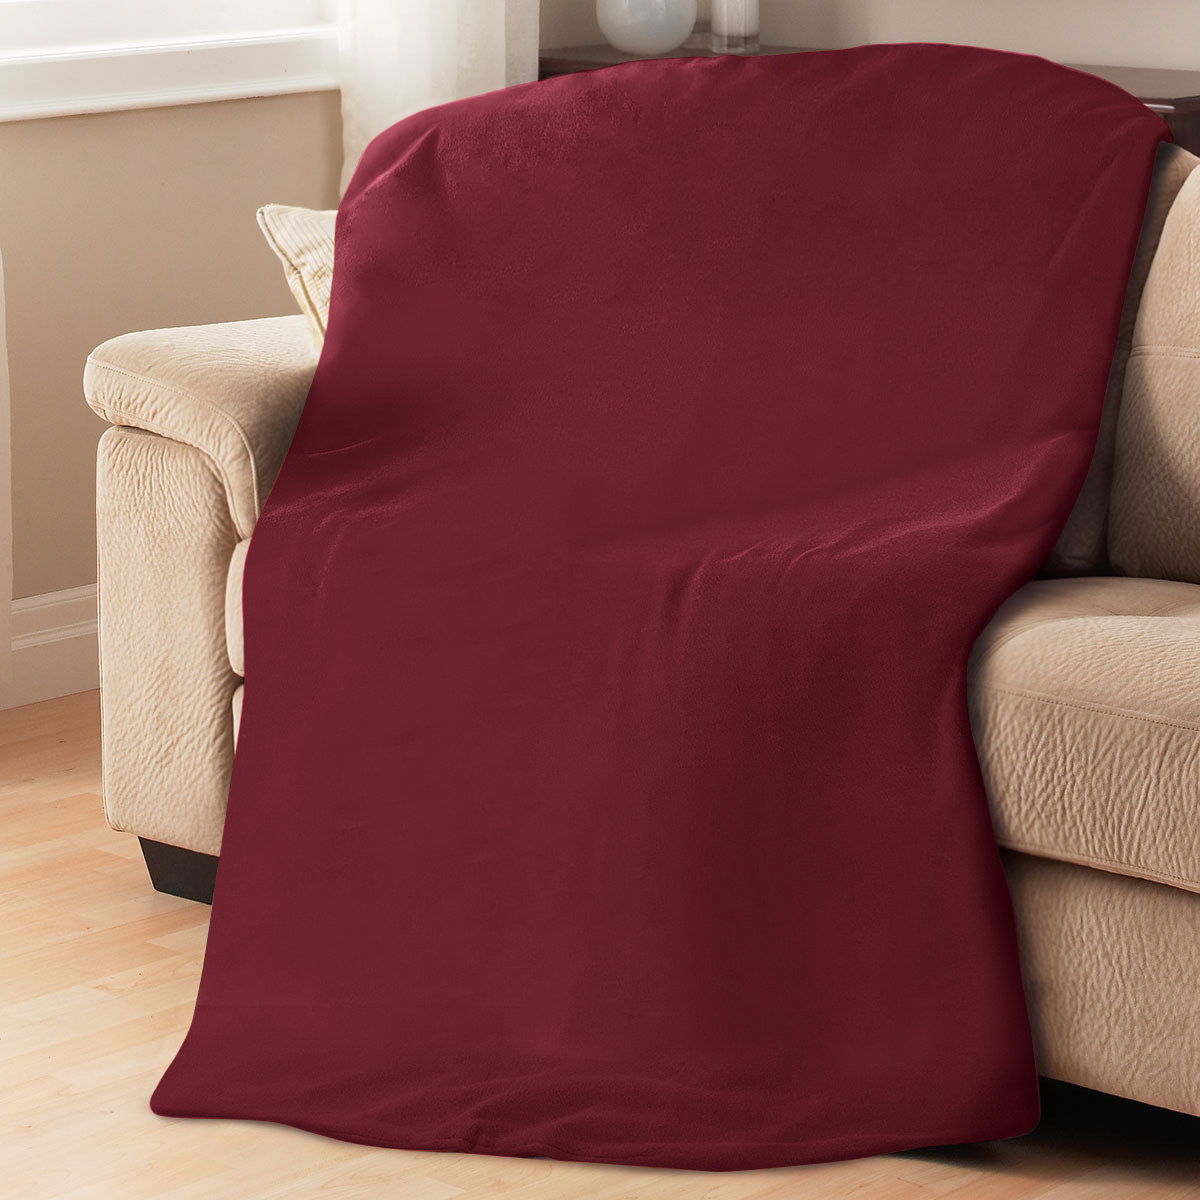 The red blanket on a tan couch